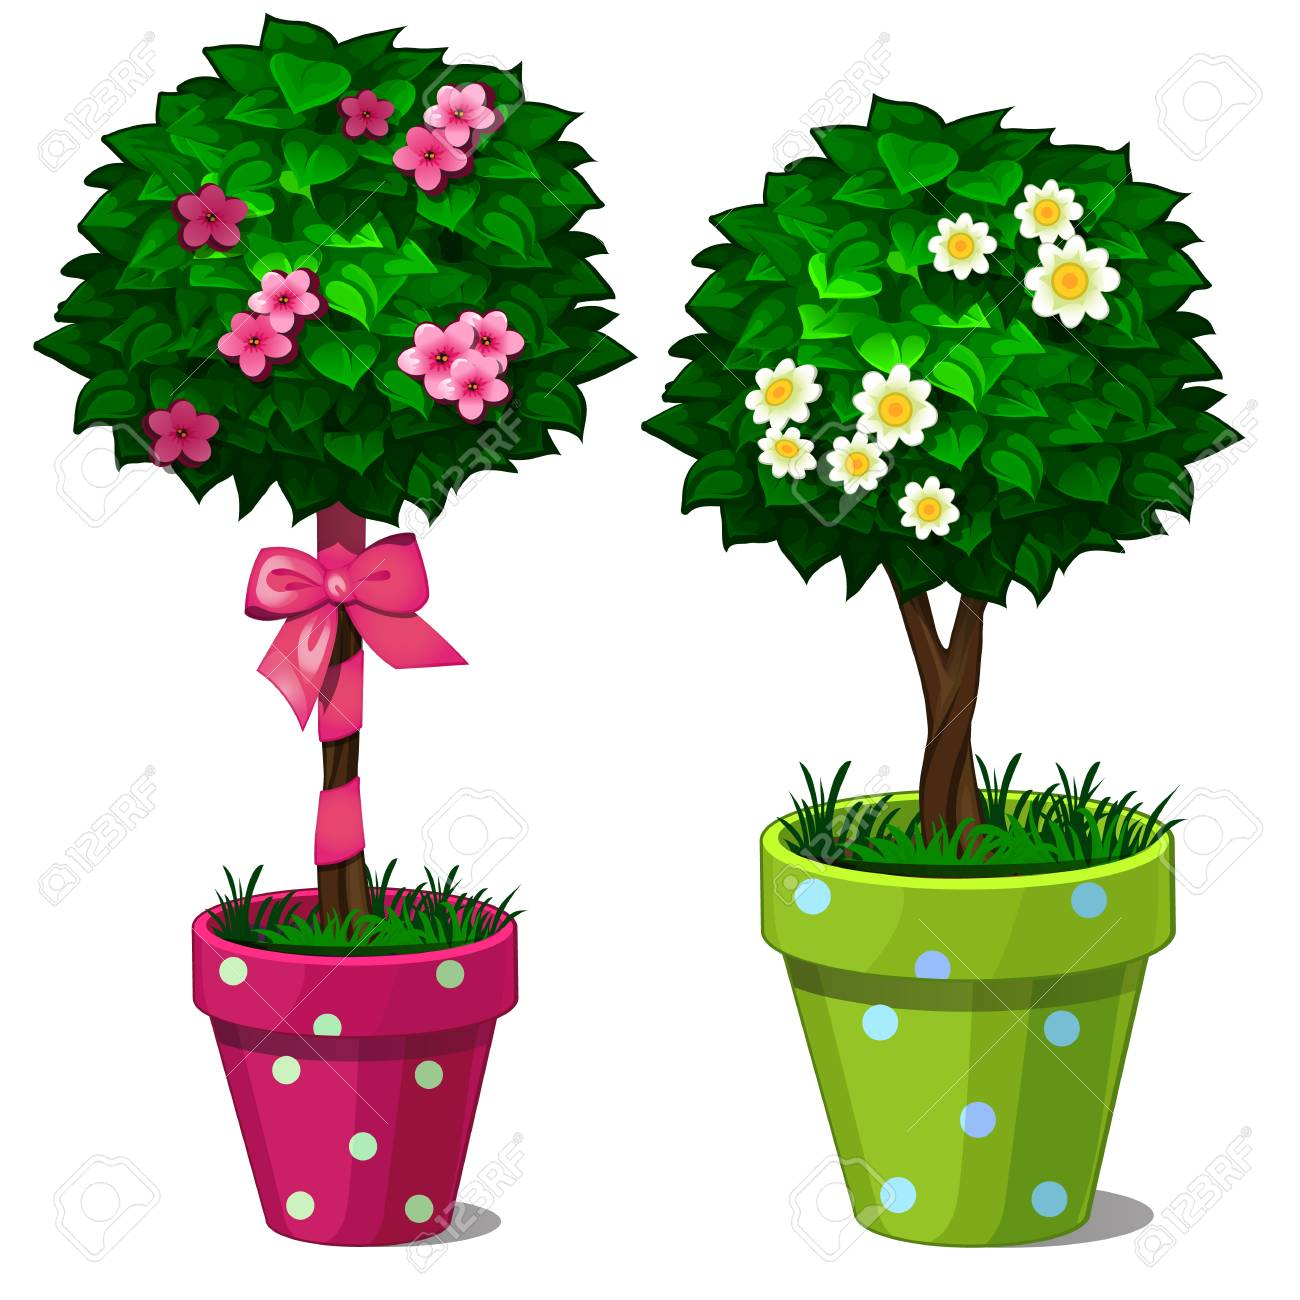 Two Decorative Bonsai Tree With Flowers In Green And Pink Pots Stock Photo Picture And Royalty Free Image Image 88145224 Polish your personal project or design with these cartoon tree transparent png images, make it even more personalized and more attractive. two decorative bonsai tree with flowers in green and pink pots